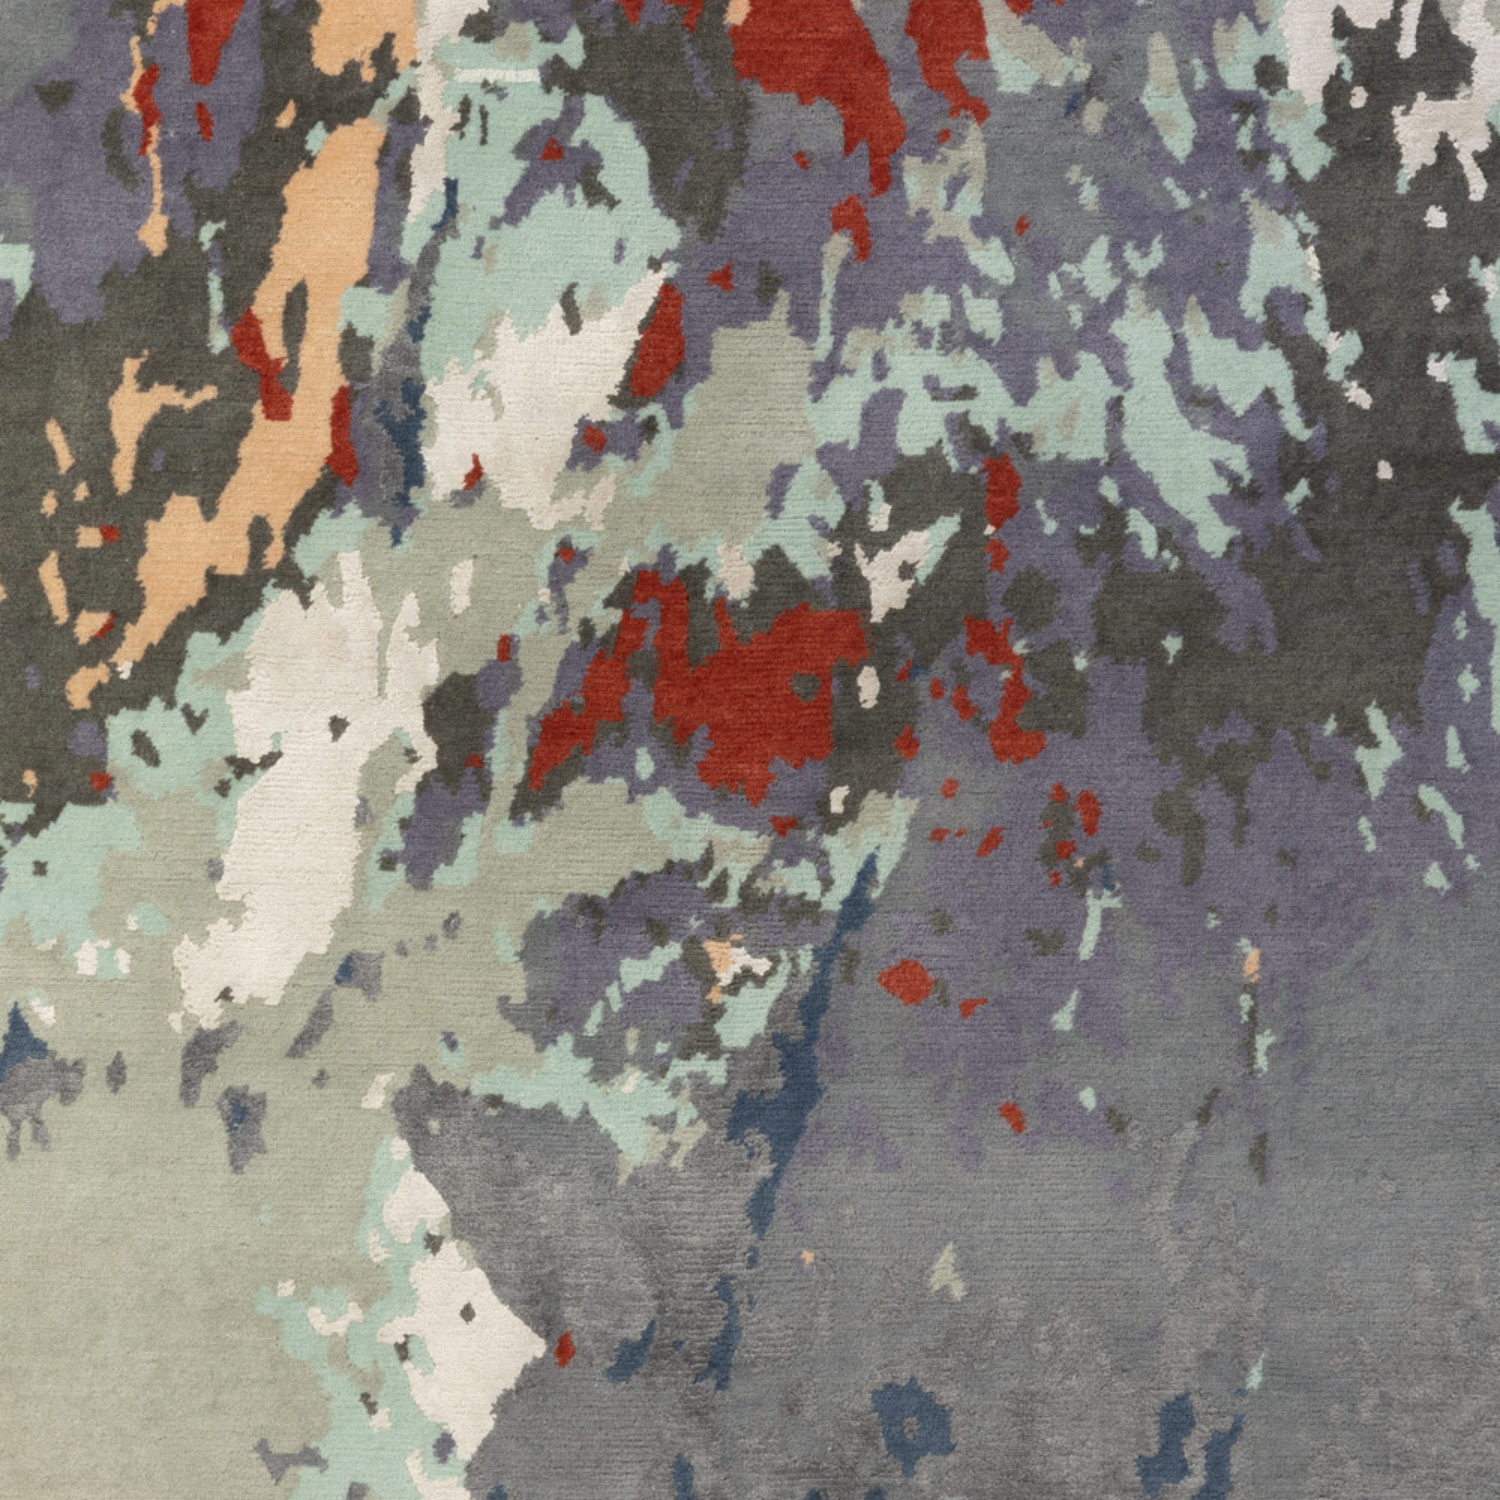 An abstract design with a painterly feel that's wonderfully expressive